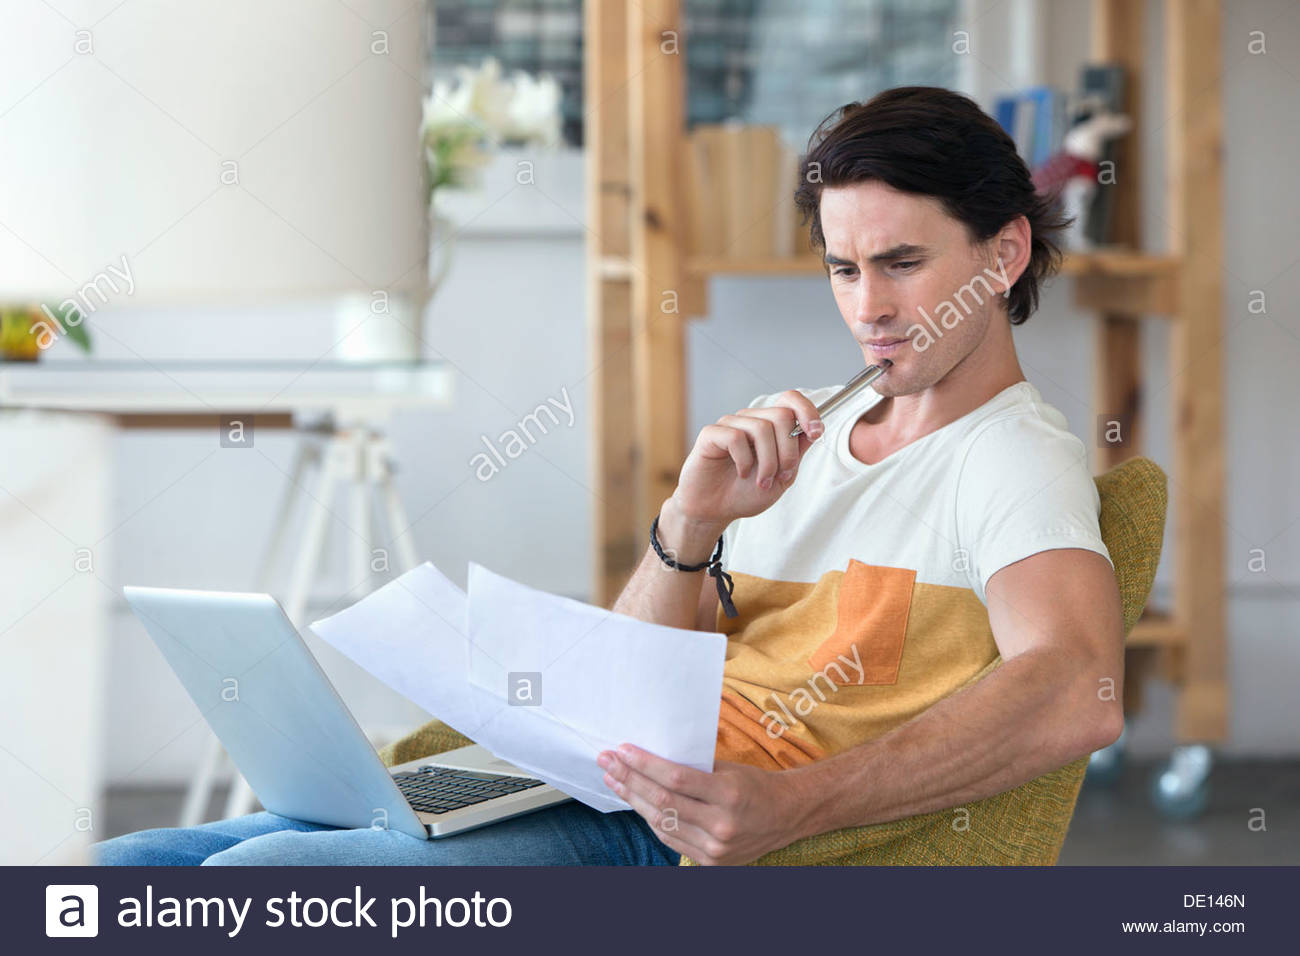 Concerned man with laptop looking down at paperwork in armchair - Stock Image